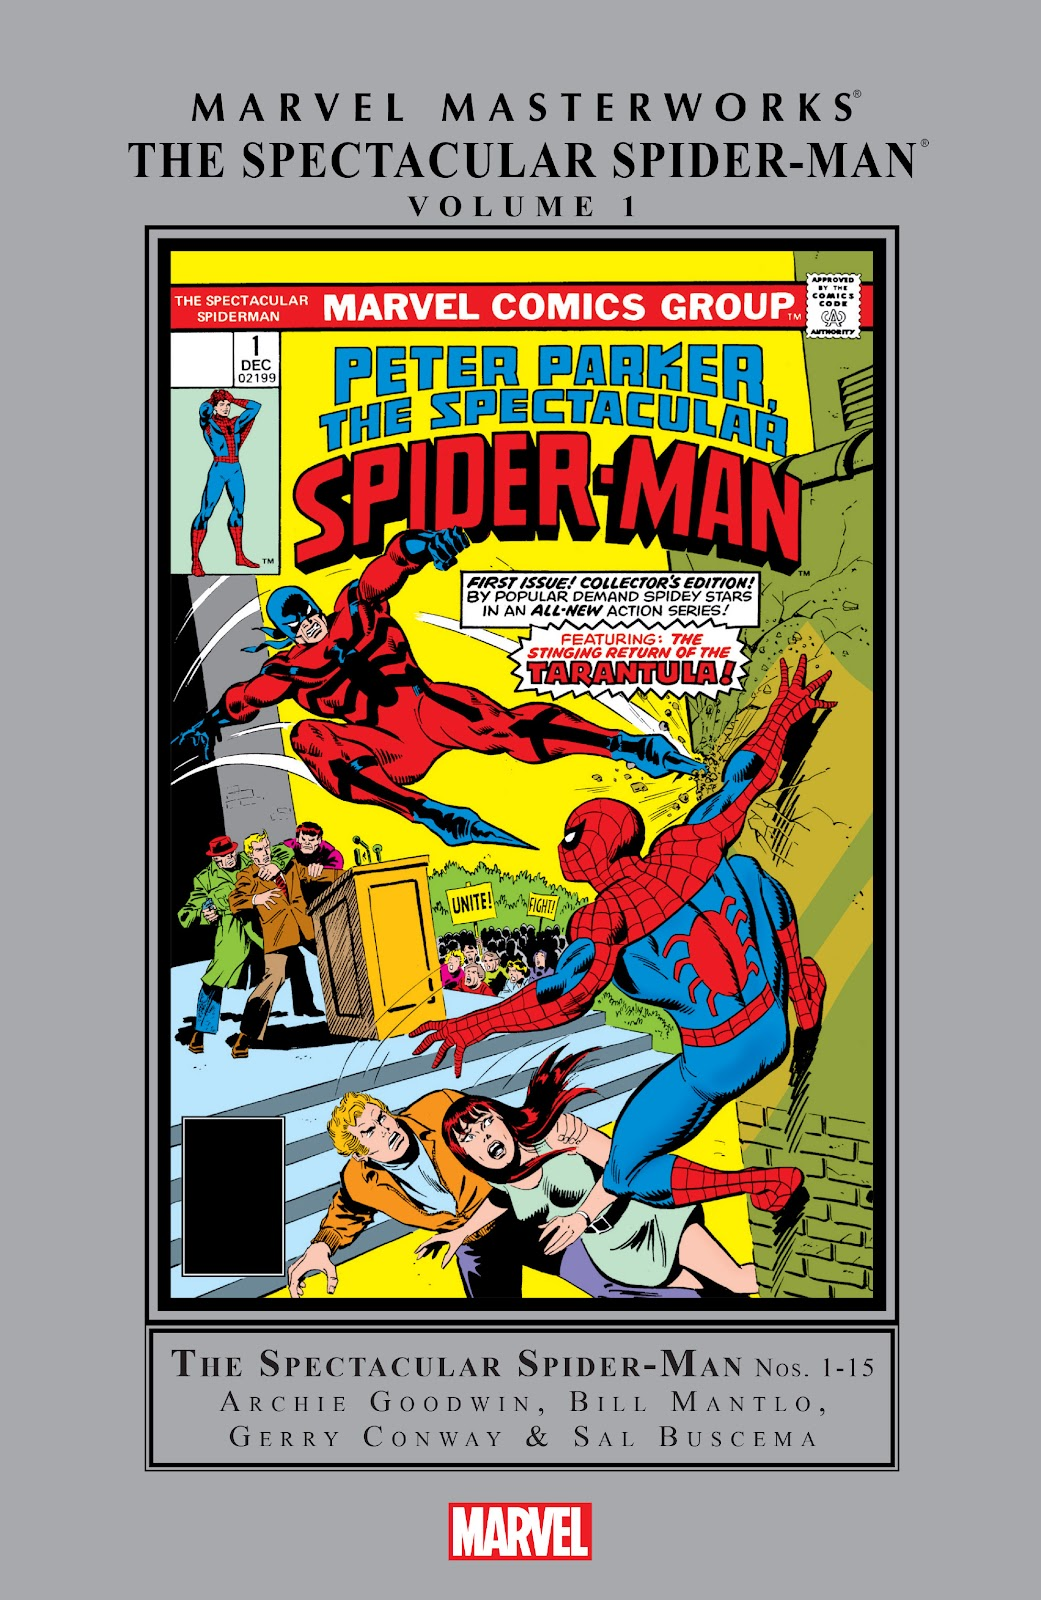 Read online Marvel Masterworks: The Spectacular Spider-Man comic -  Issue # TPB (Part 1) - 1